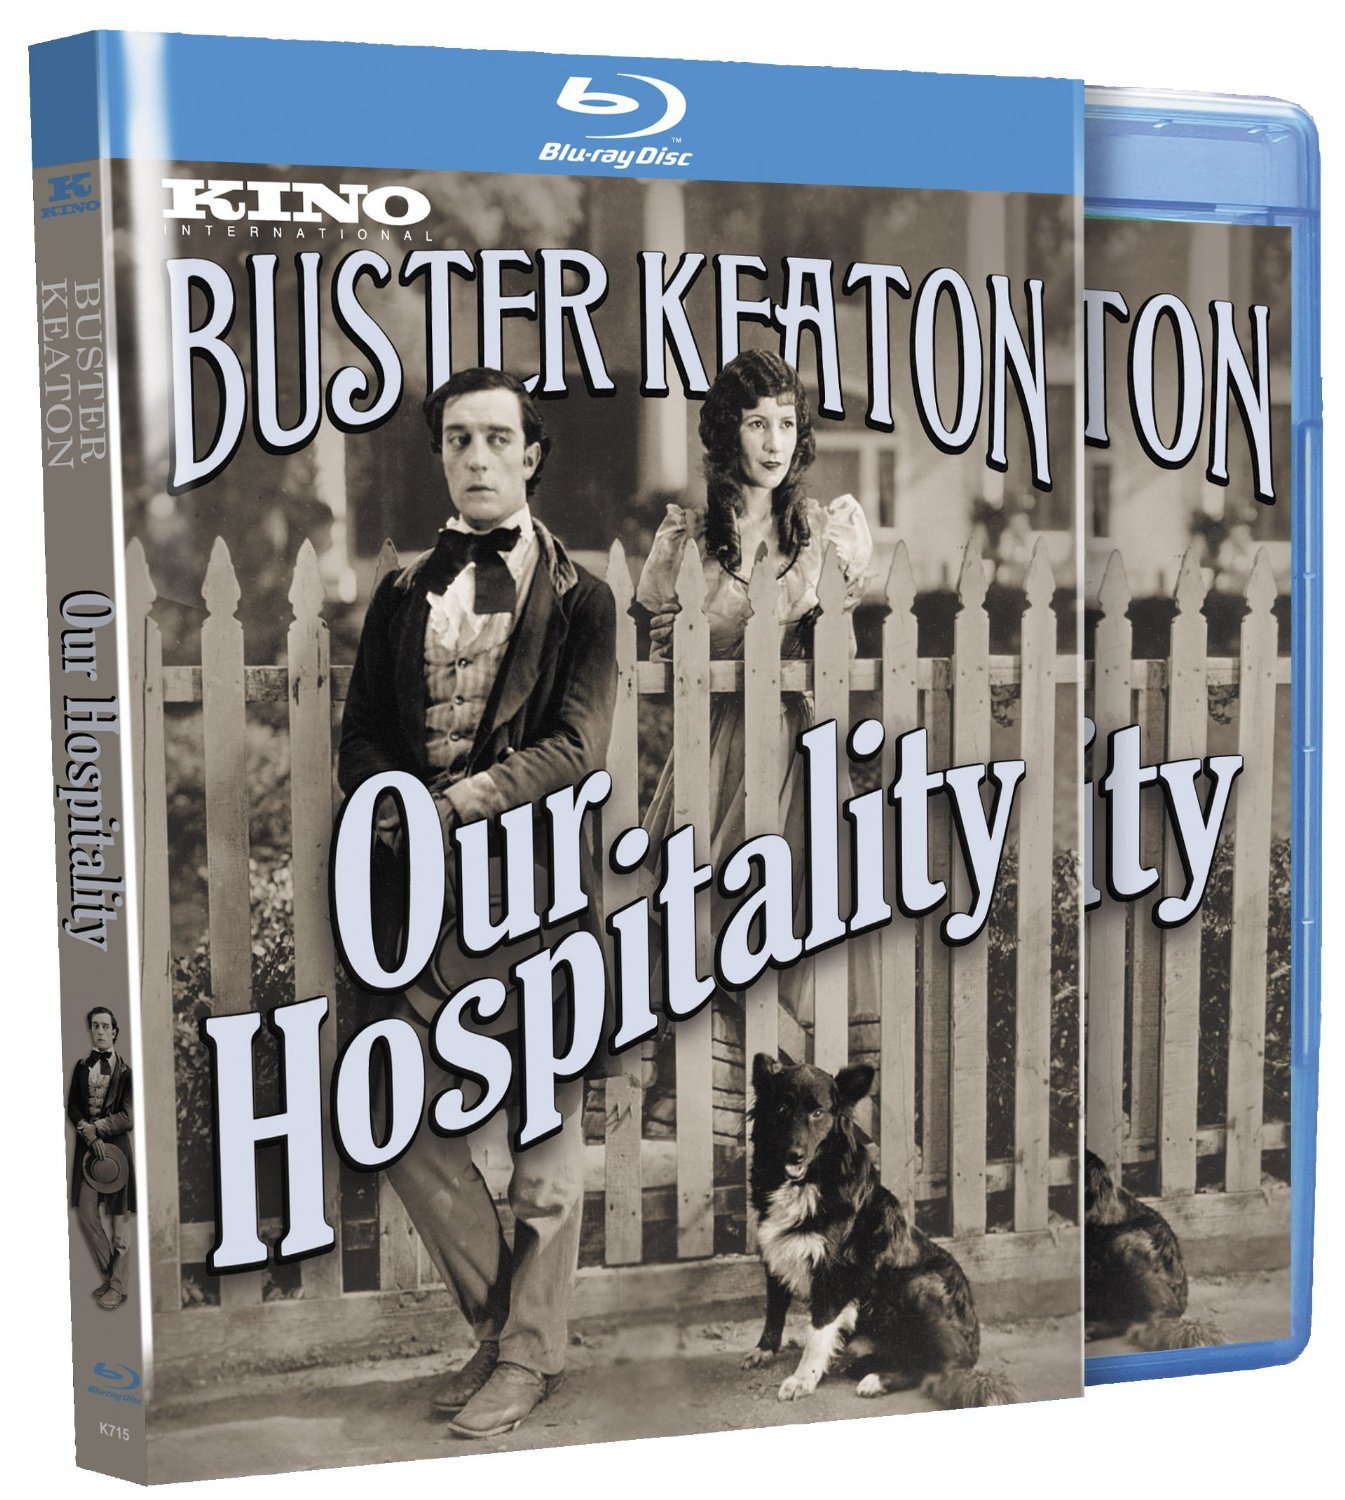 Our Hospitality, starring Buster Keaton and Natalie Talmadge